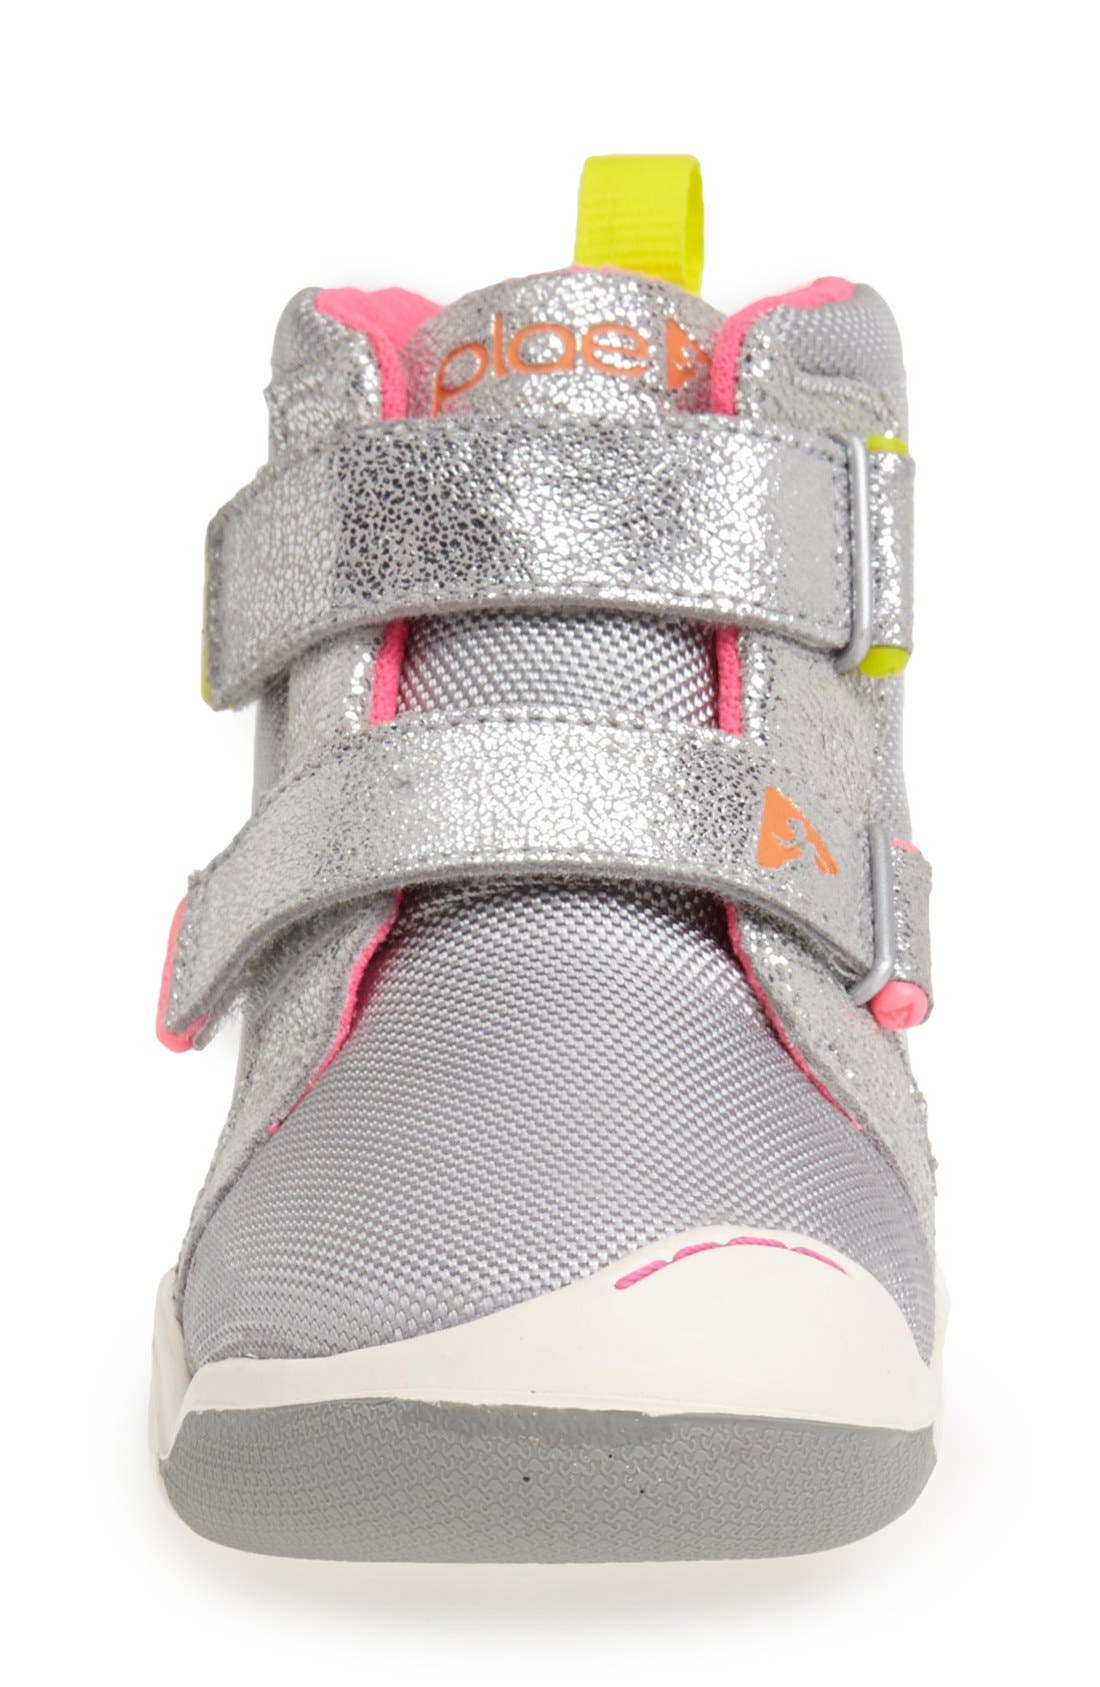 Alternate Image 3  - PLAE 'Max' Customizable High Top Sneaker (Toddler & Little Kid)